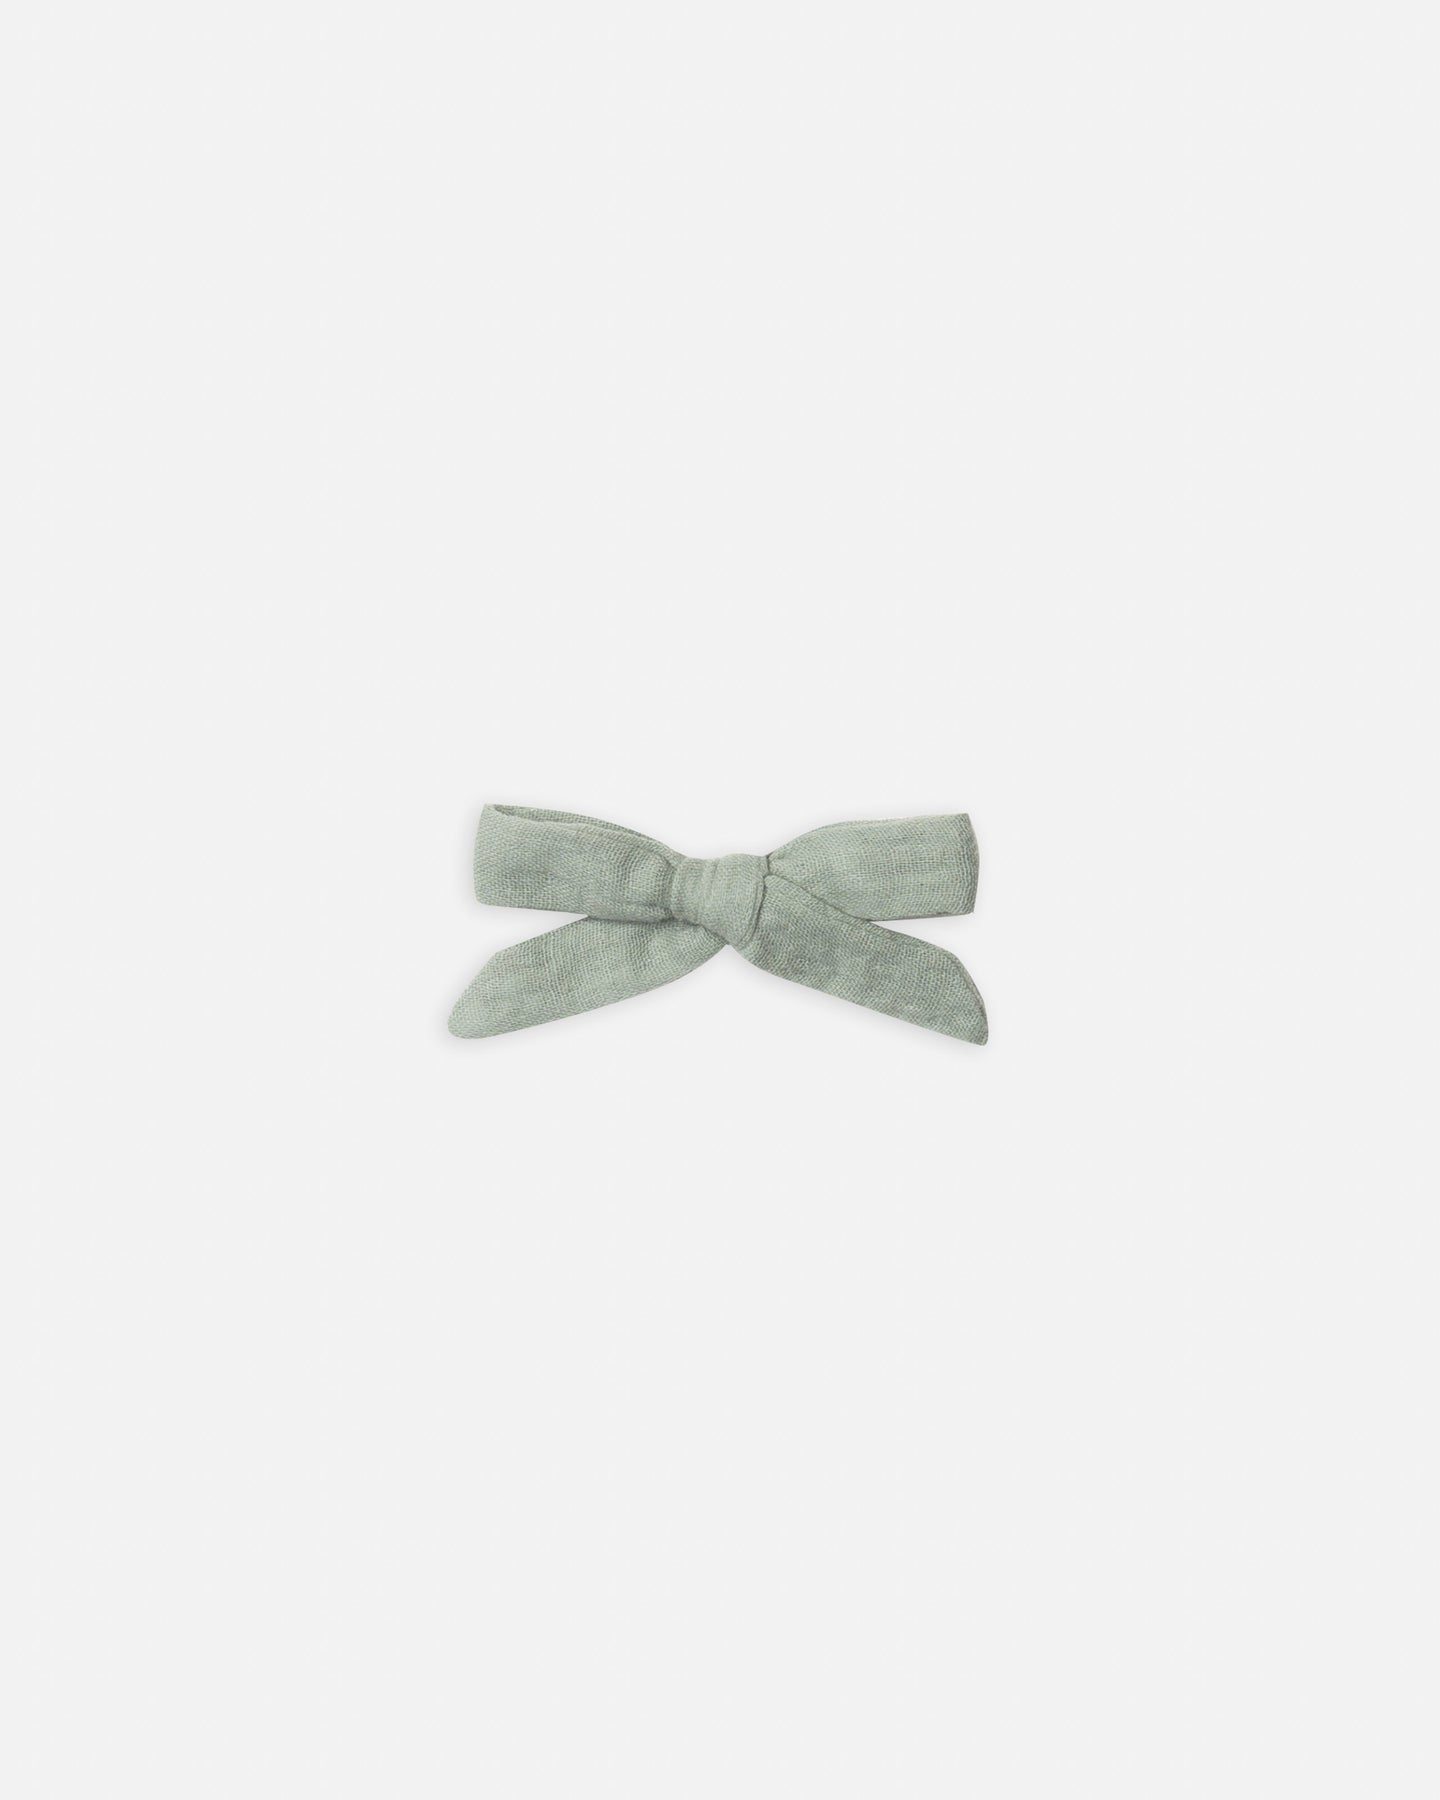 Rylee + Cru Bow With Clip - Seafoam